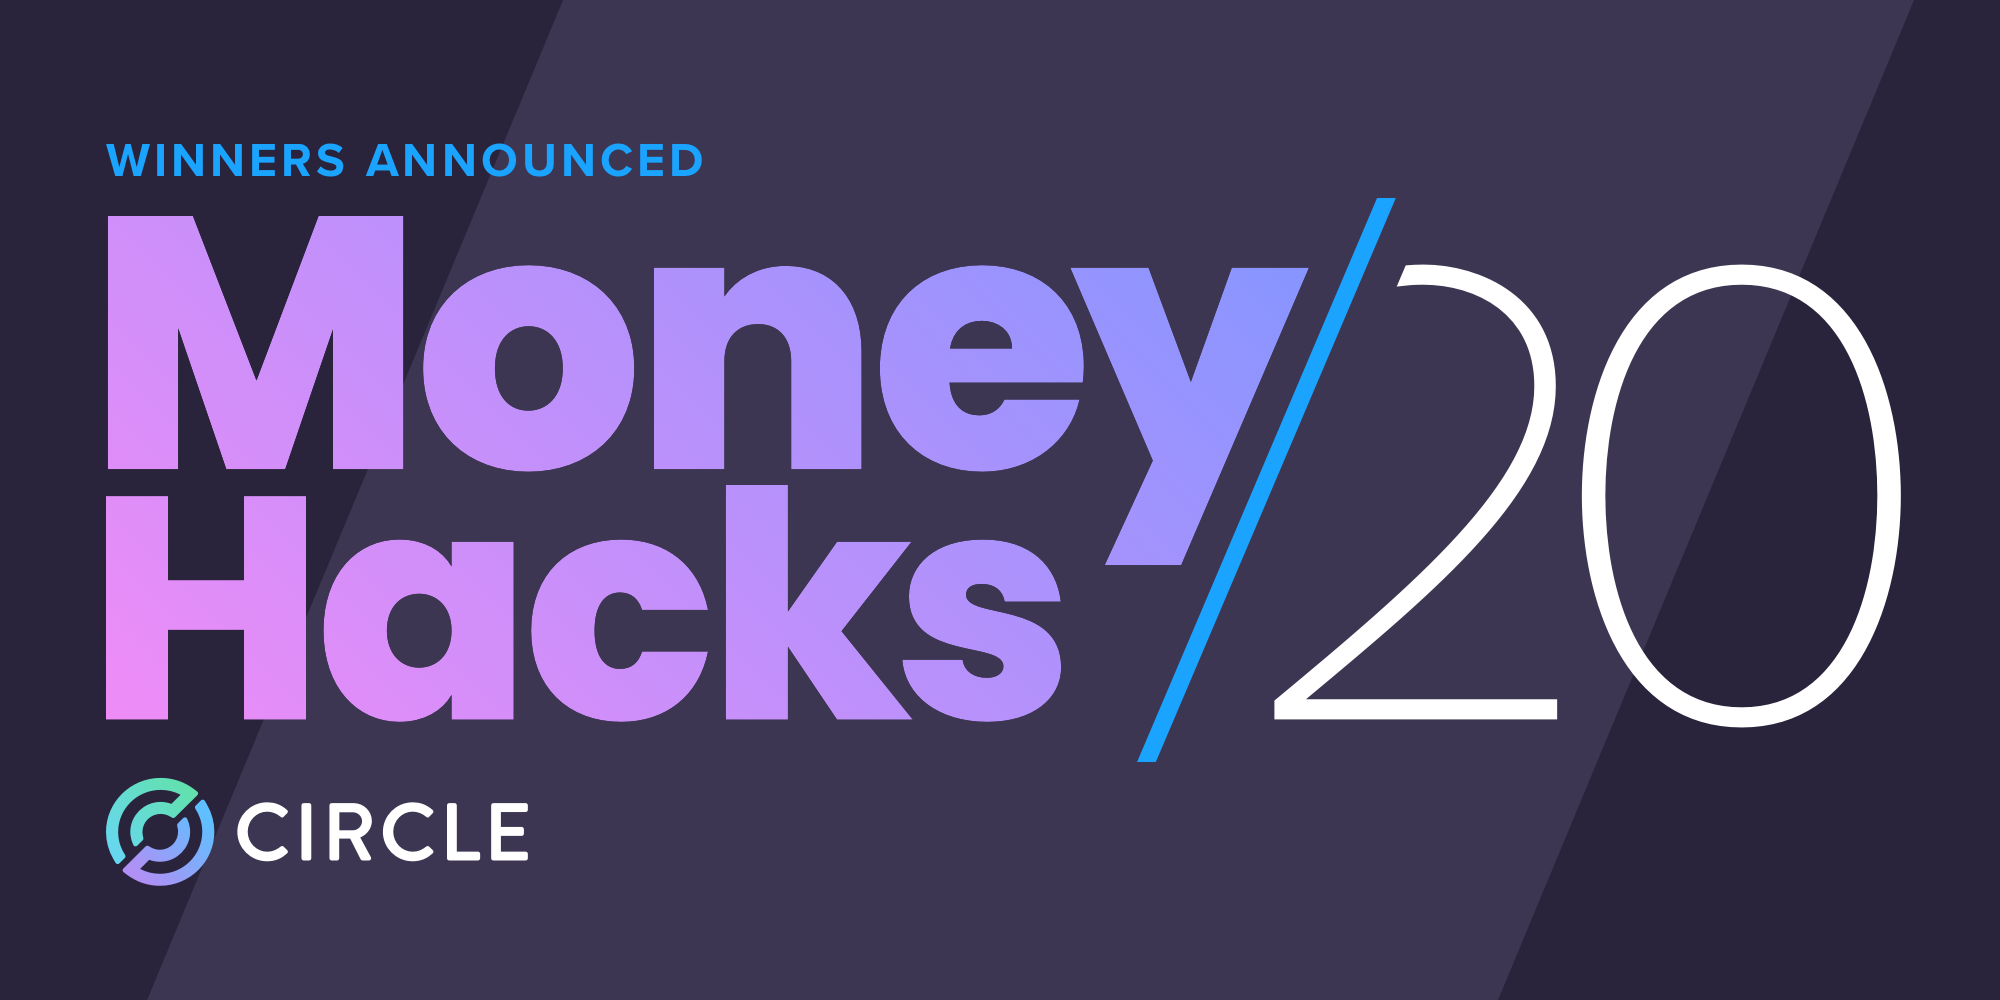 MoneyHacks 2020 Winners Announced and Wrap Up!